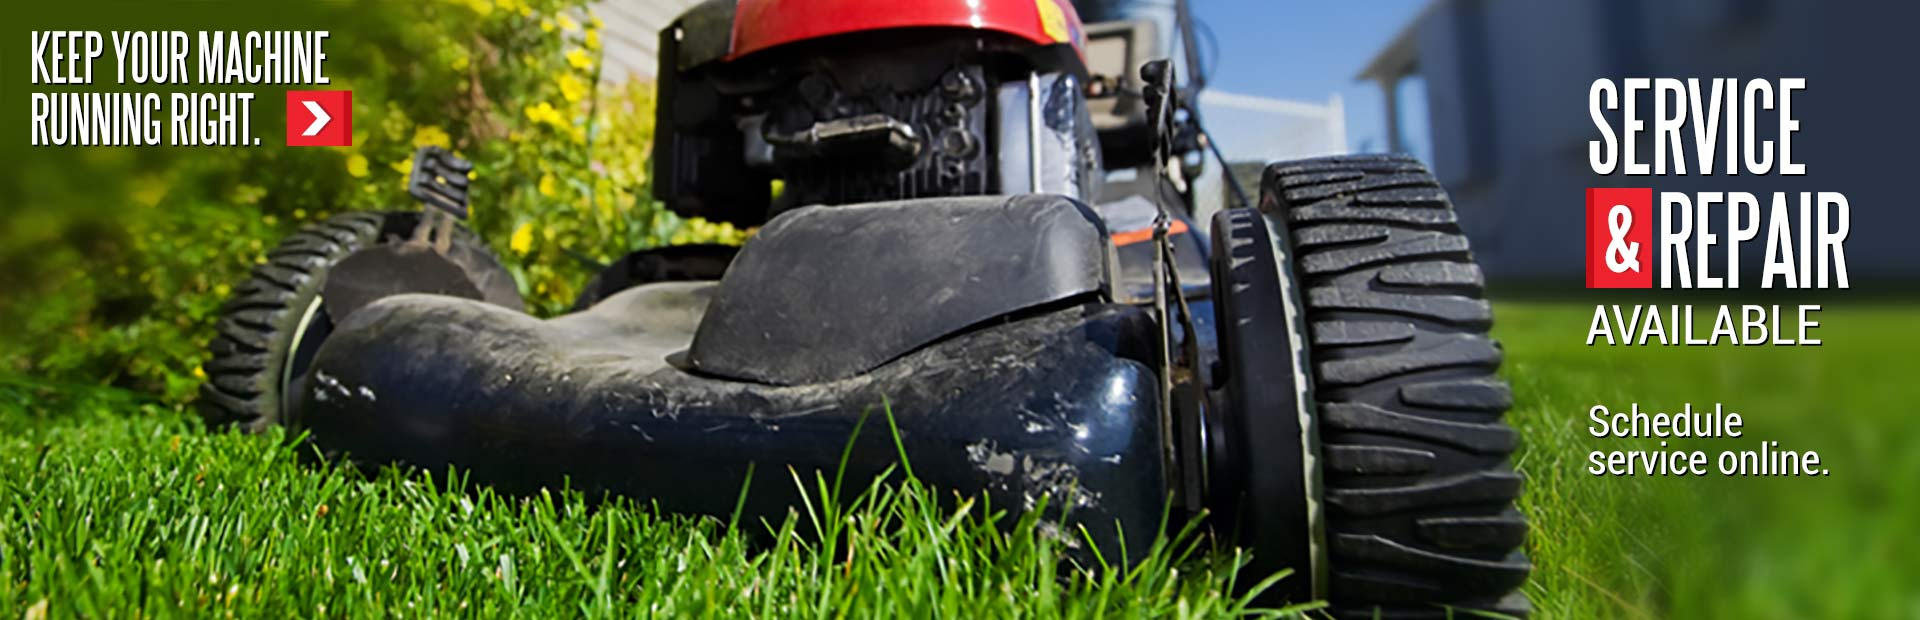 Mower and Handheld Equipment Service, Maintenance, and Repair Available: Schedule service online